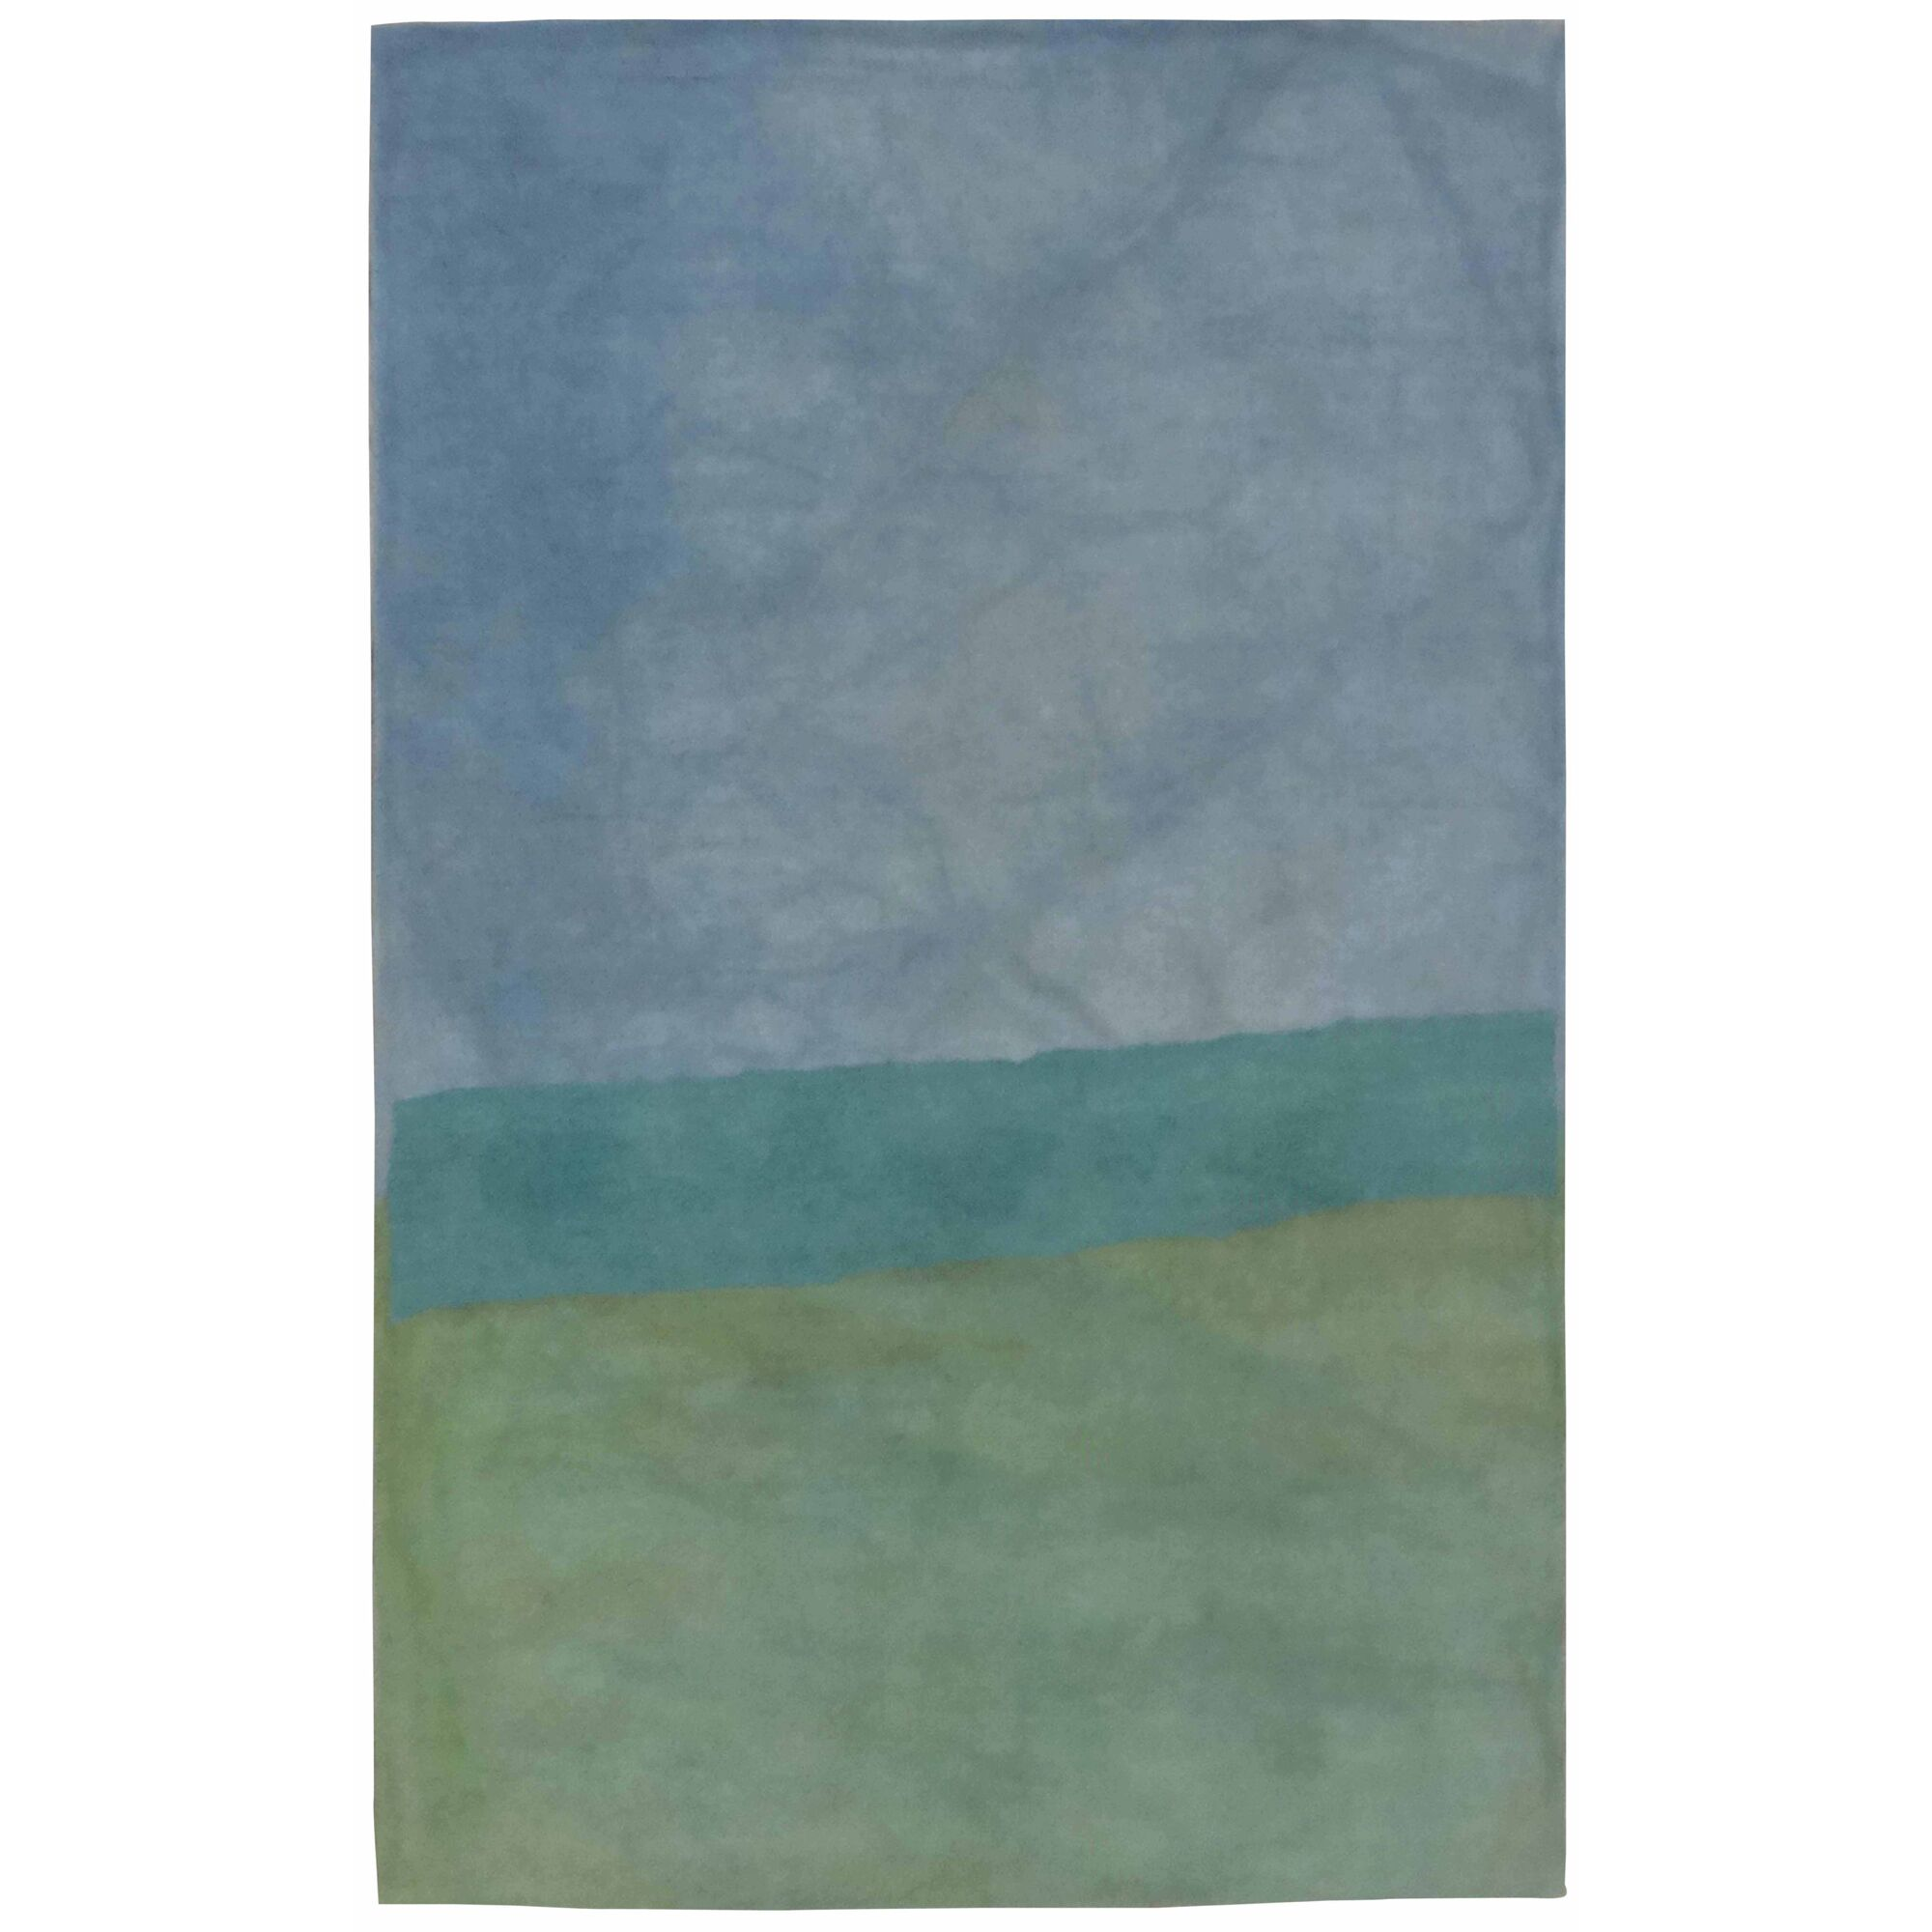 Mullican Hand-Tufted Wool Green/Blue Area Rug Rug Size: Rectangle 7'6